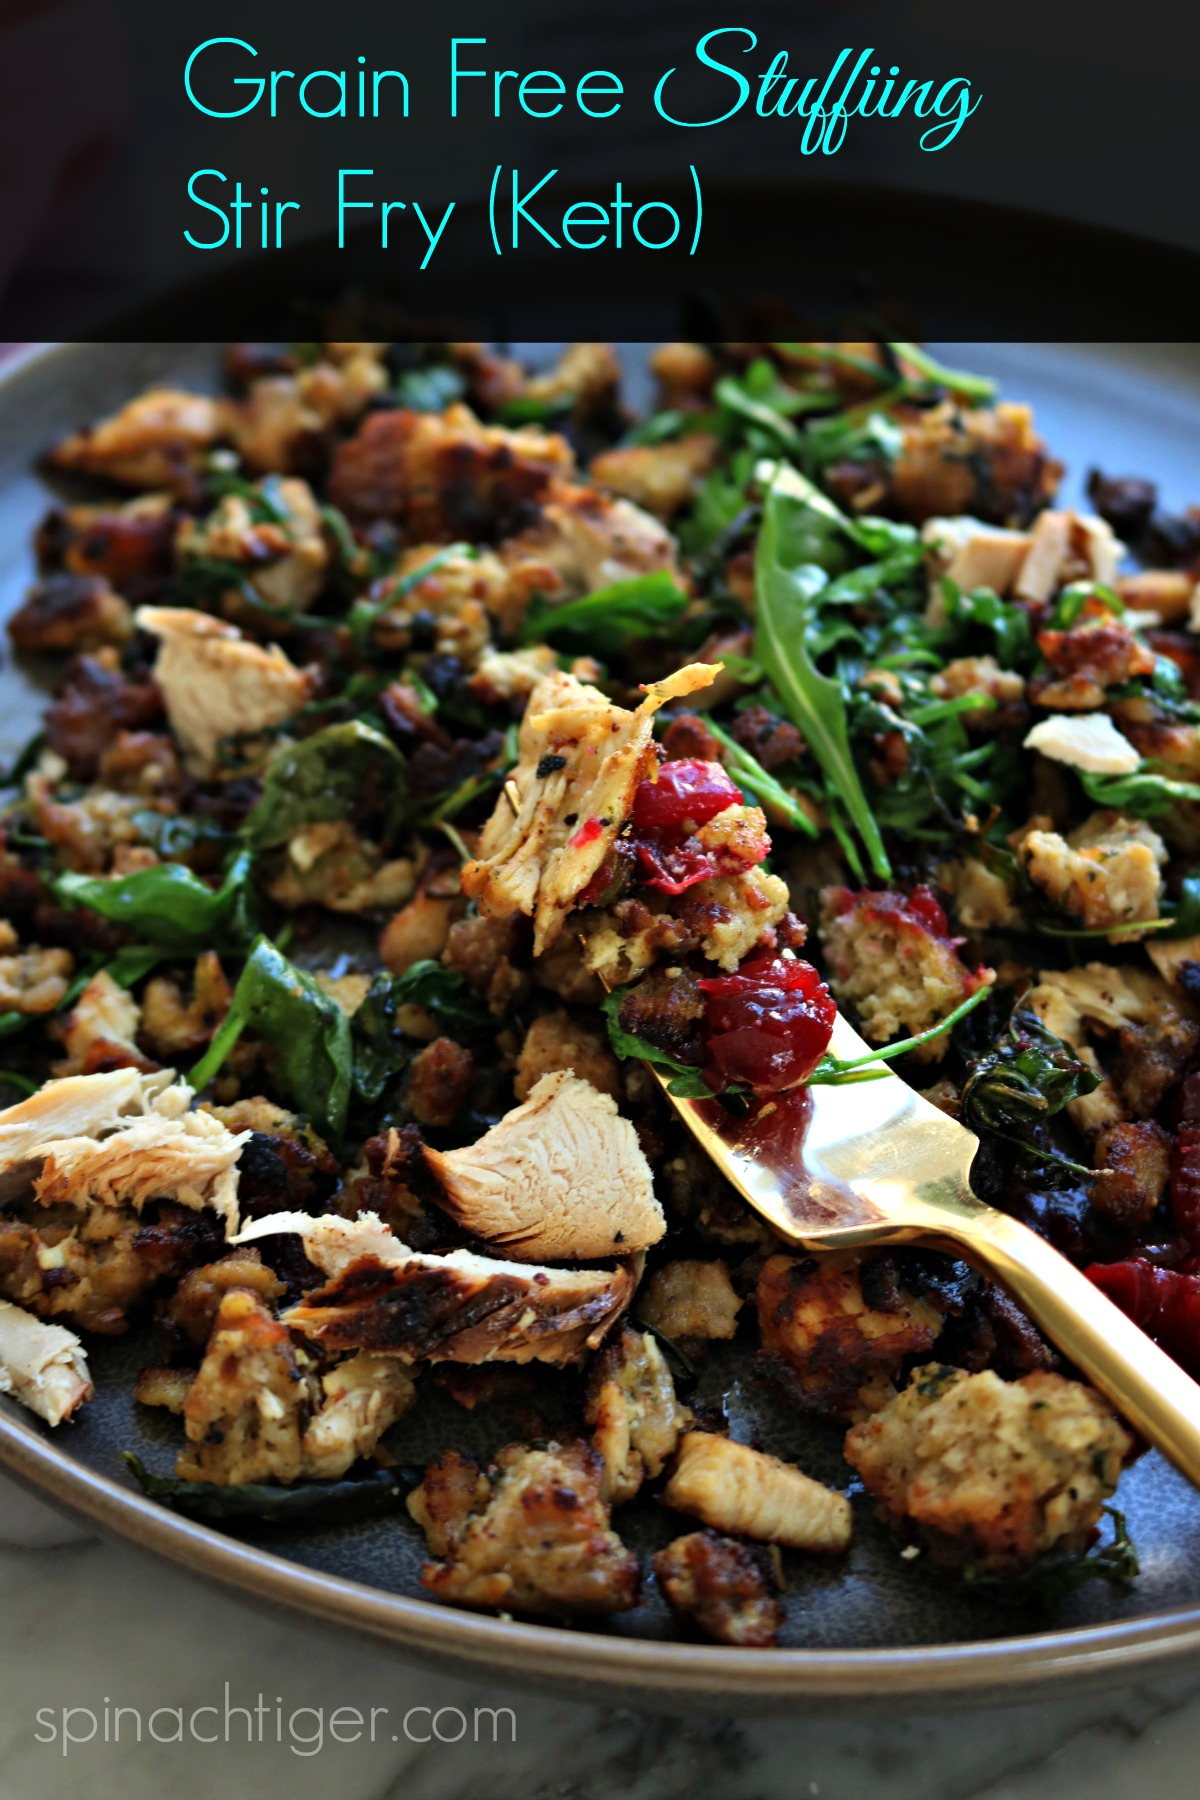 Grain Free stuffing Leftover Stir Fry